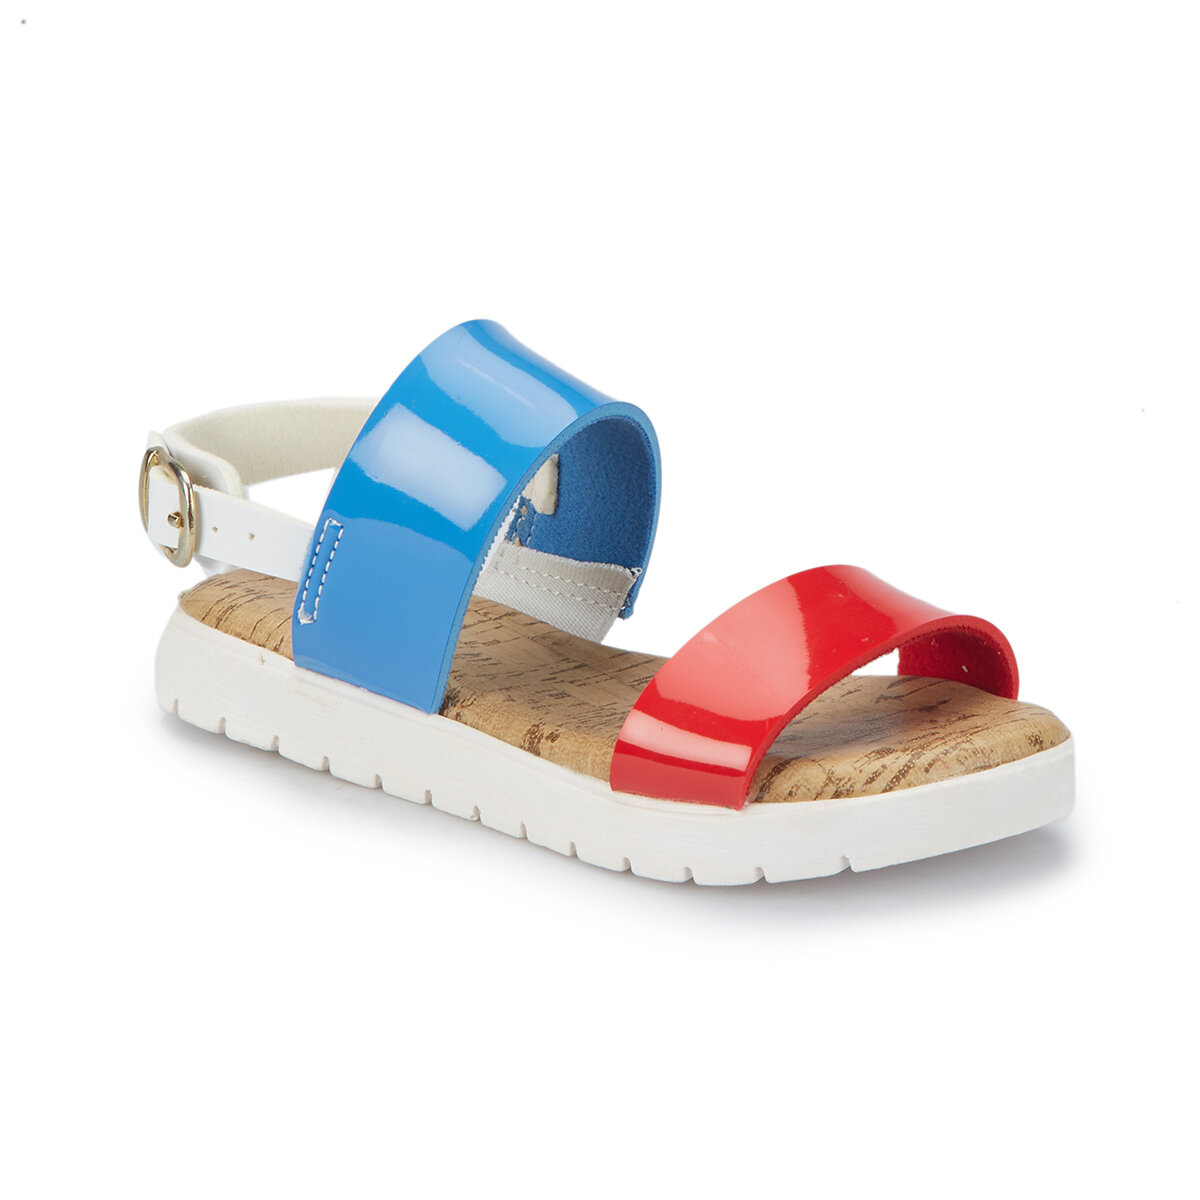 FLO DILOR Blue Girl Child Sandals PINKSTEP